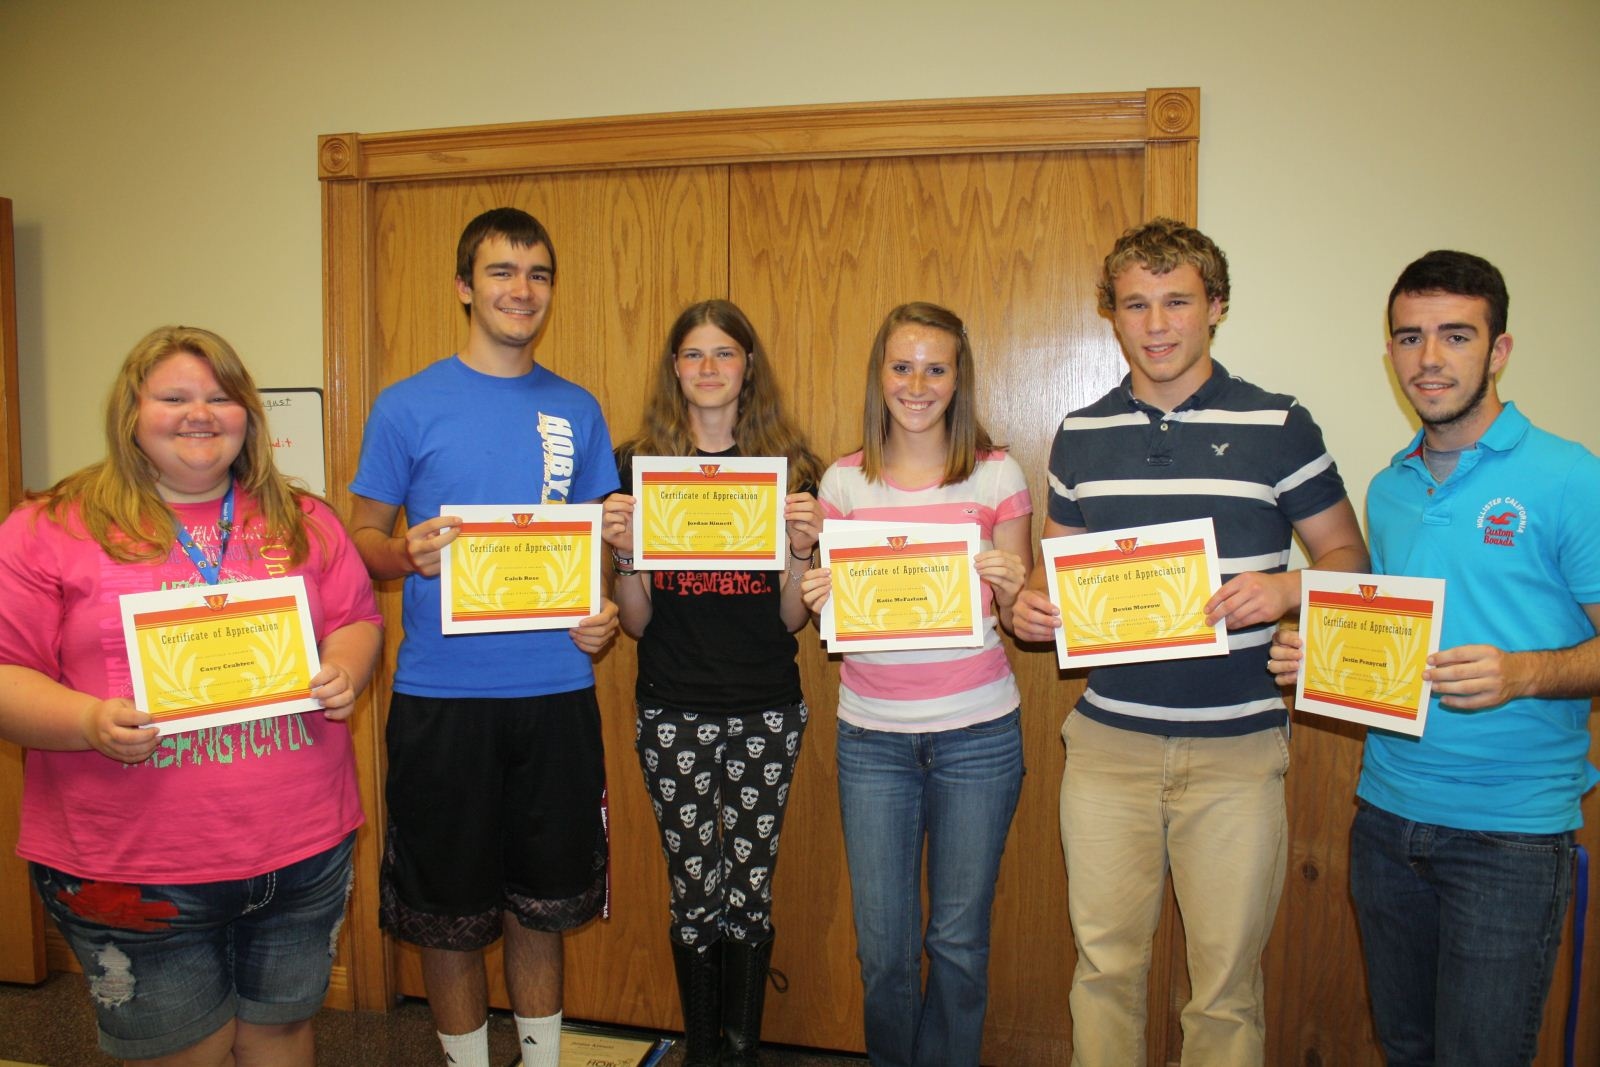 Wayne County Board Of Education Recognizes High School Students Talents During Recent Meetings